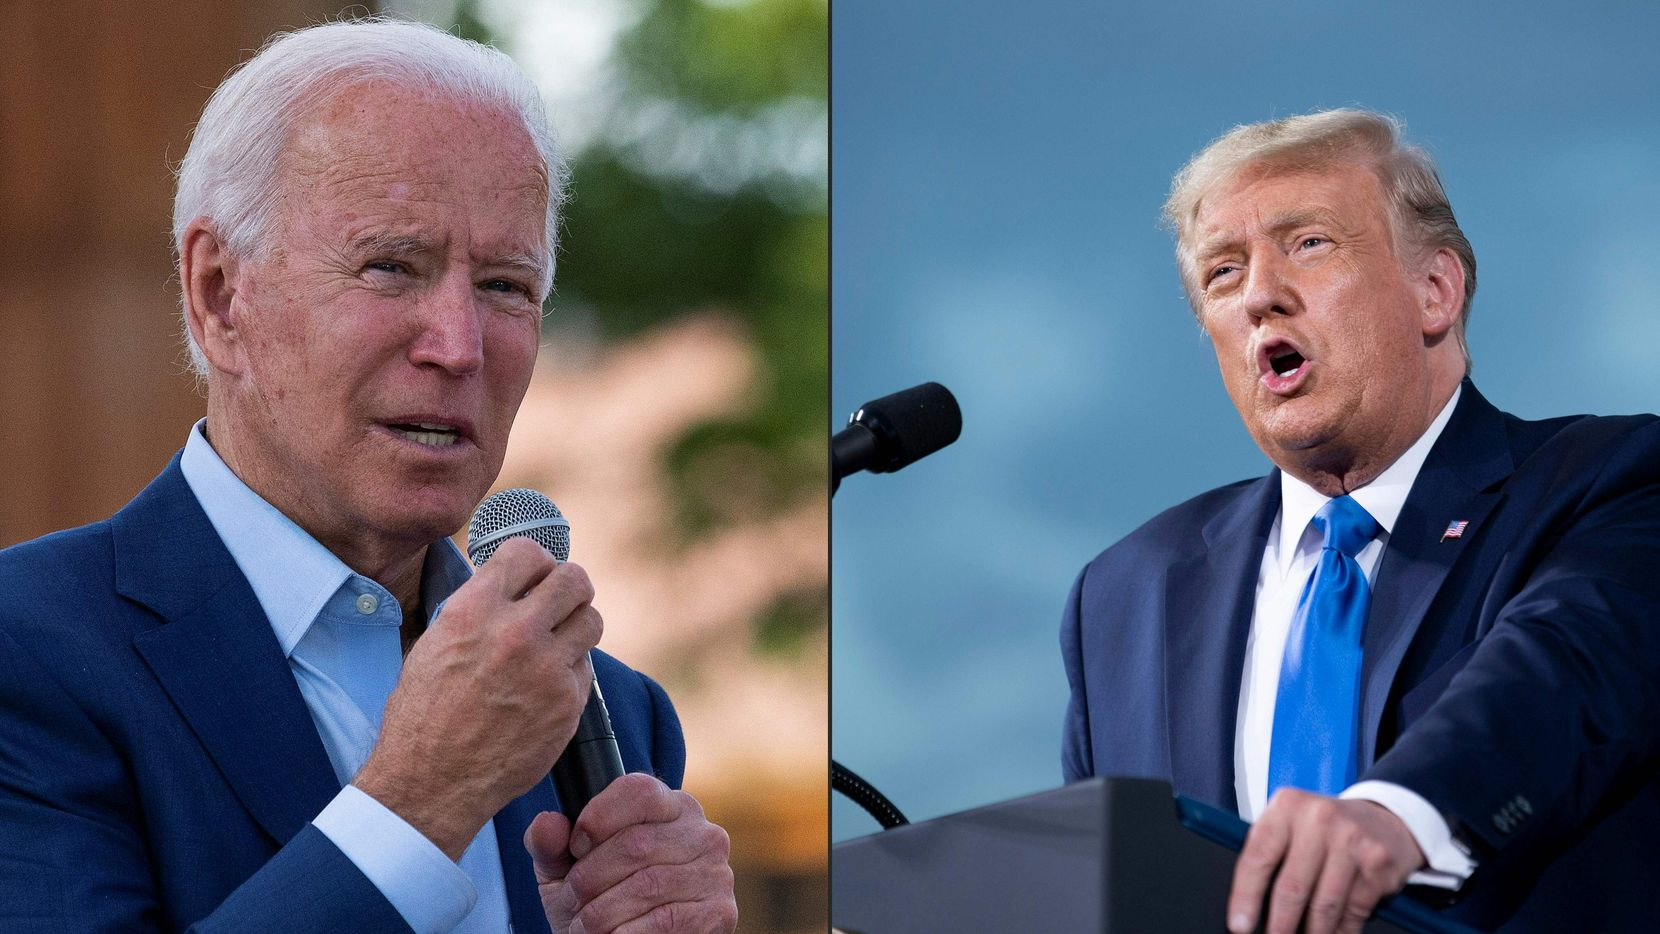 At left, Joe Biden speaks Sept. 23, 2020, at the Black Economic Summit in Charlotte, N.C. At right, President Donald Trump campaigns Sept. 24 at a rally at Cecil Airport in Jacksonville, Fla. (AFP photos by Jim Watson and Brendan Smialowski)